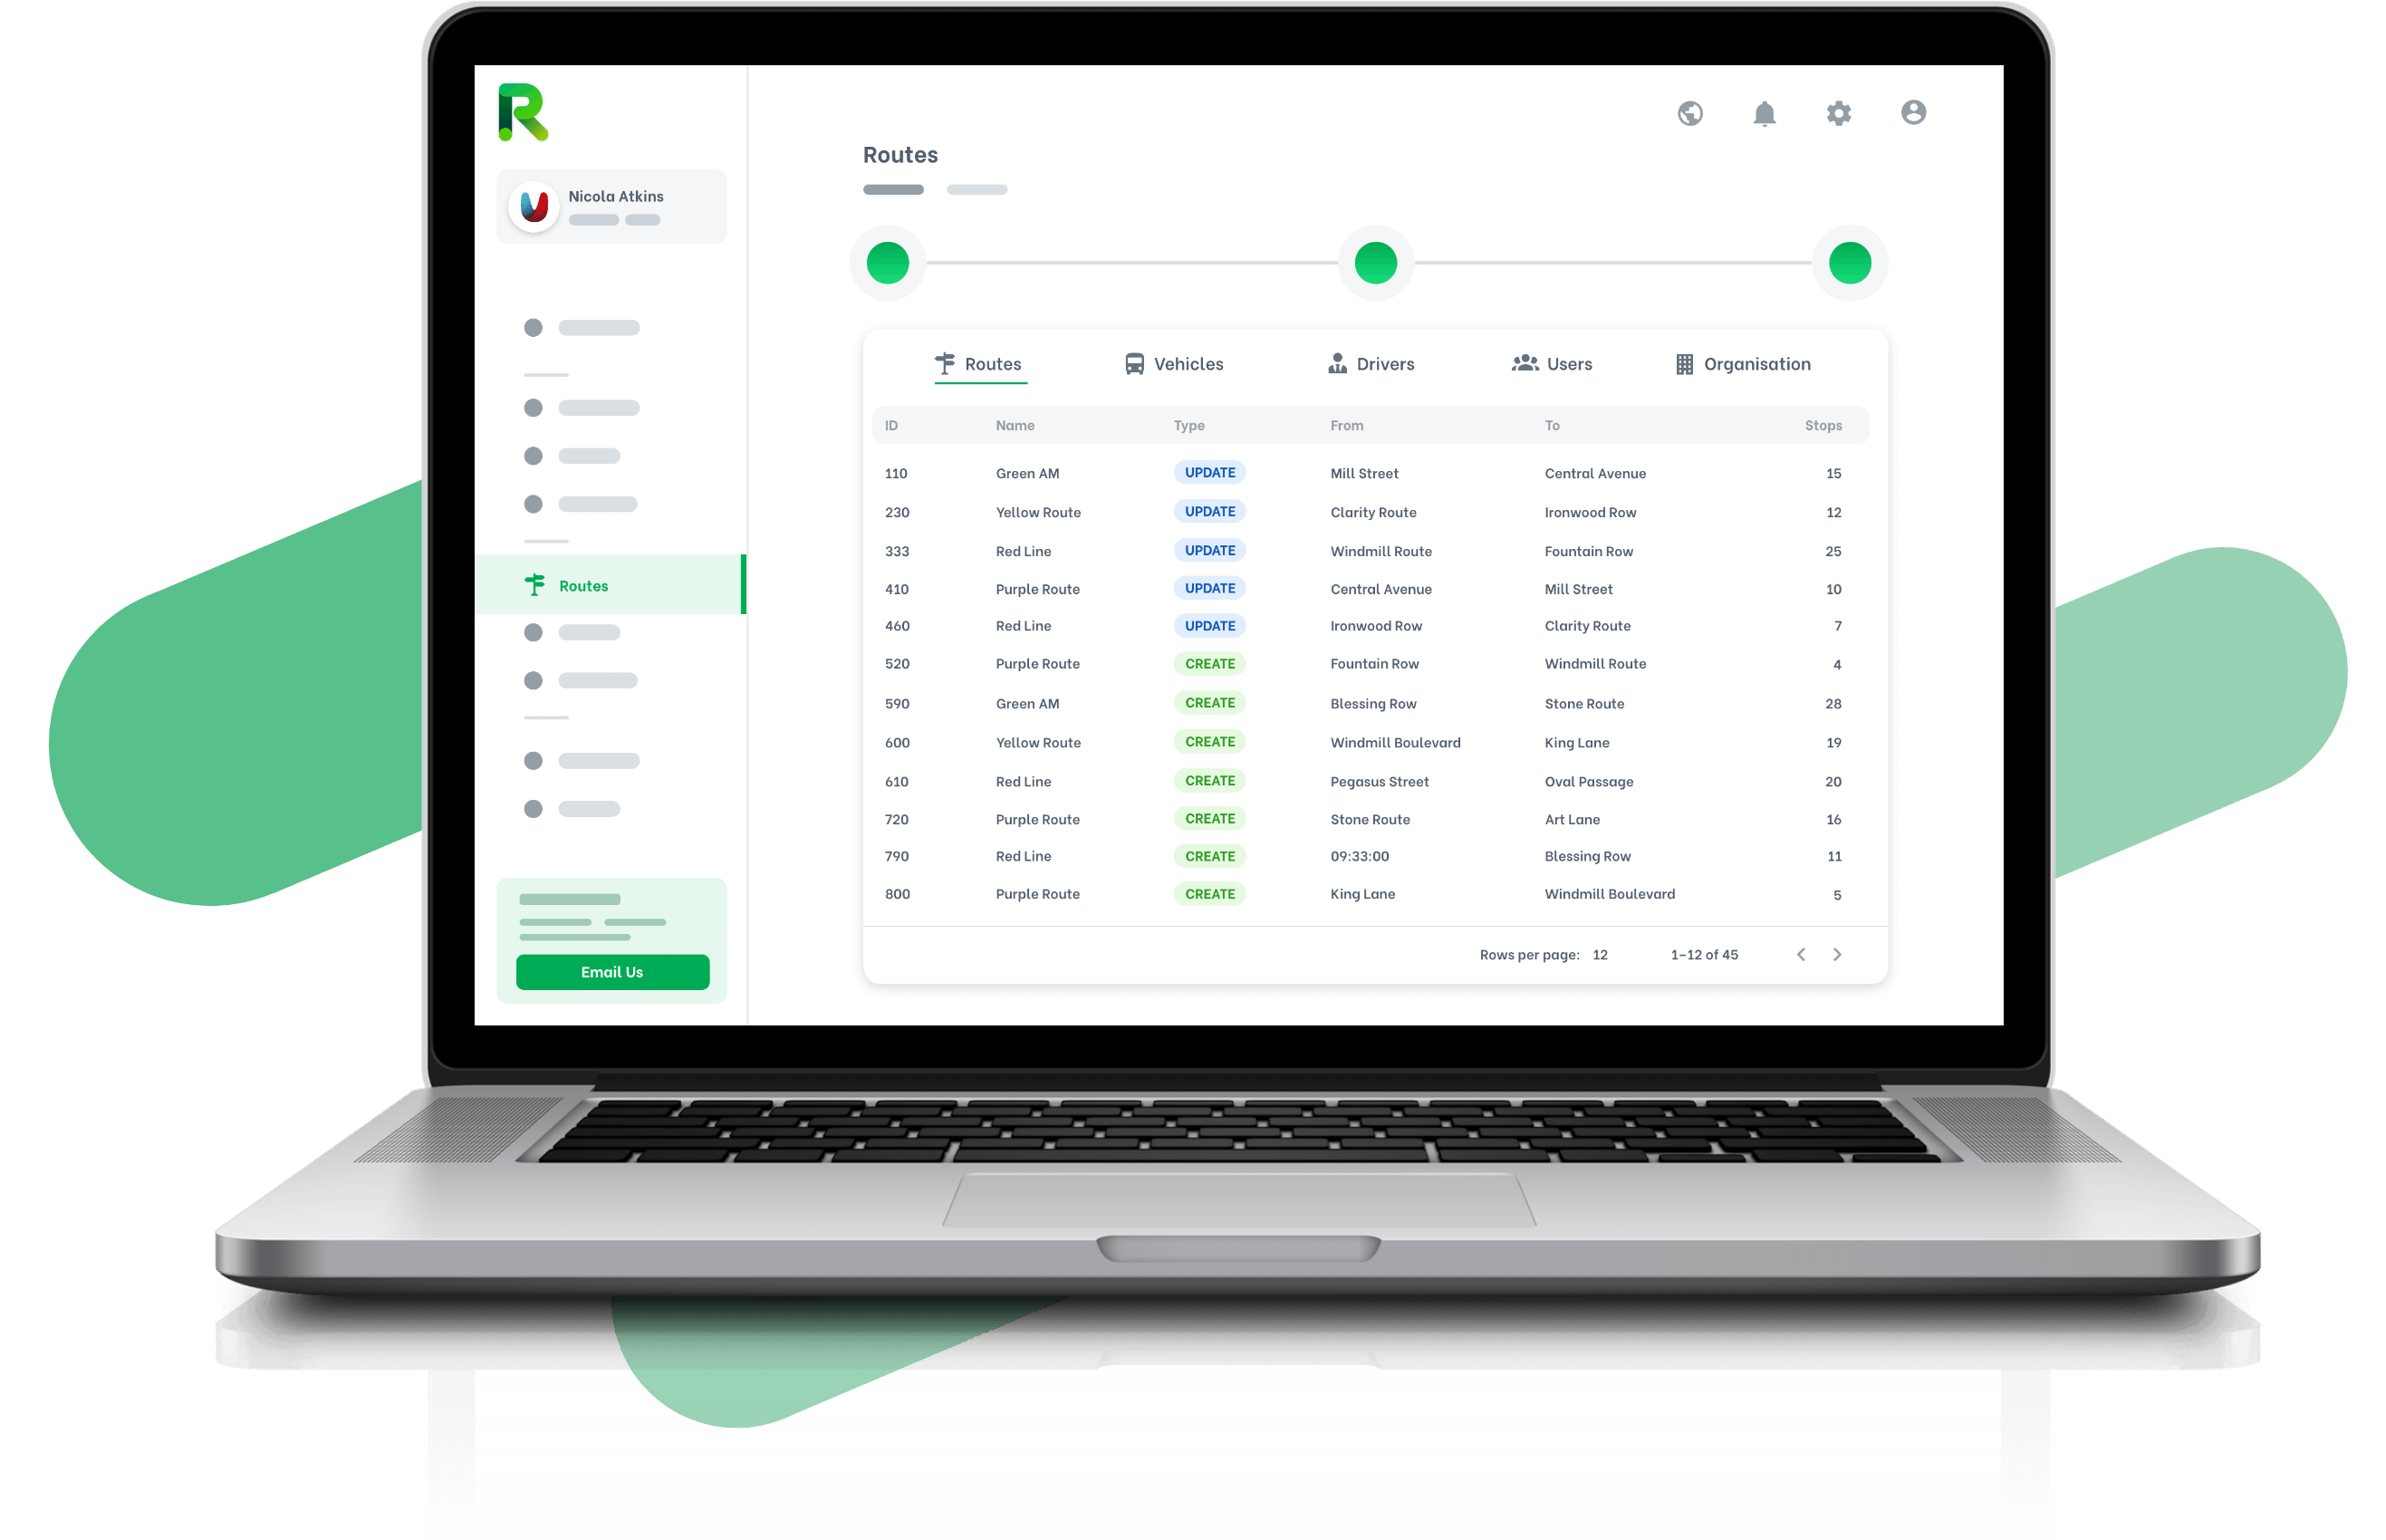 Computer mockup of the RYGO product that showcase the Route information with all the details provided to Admins